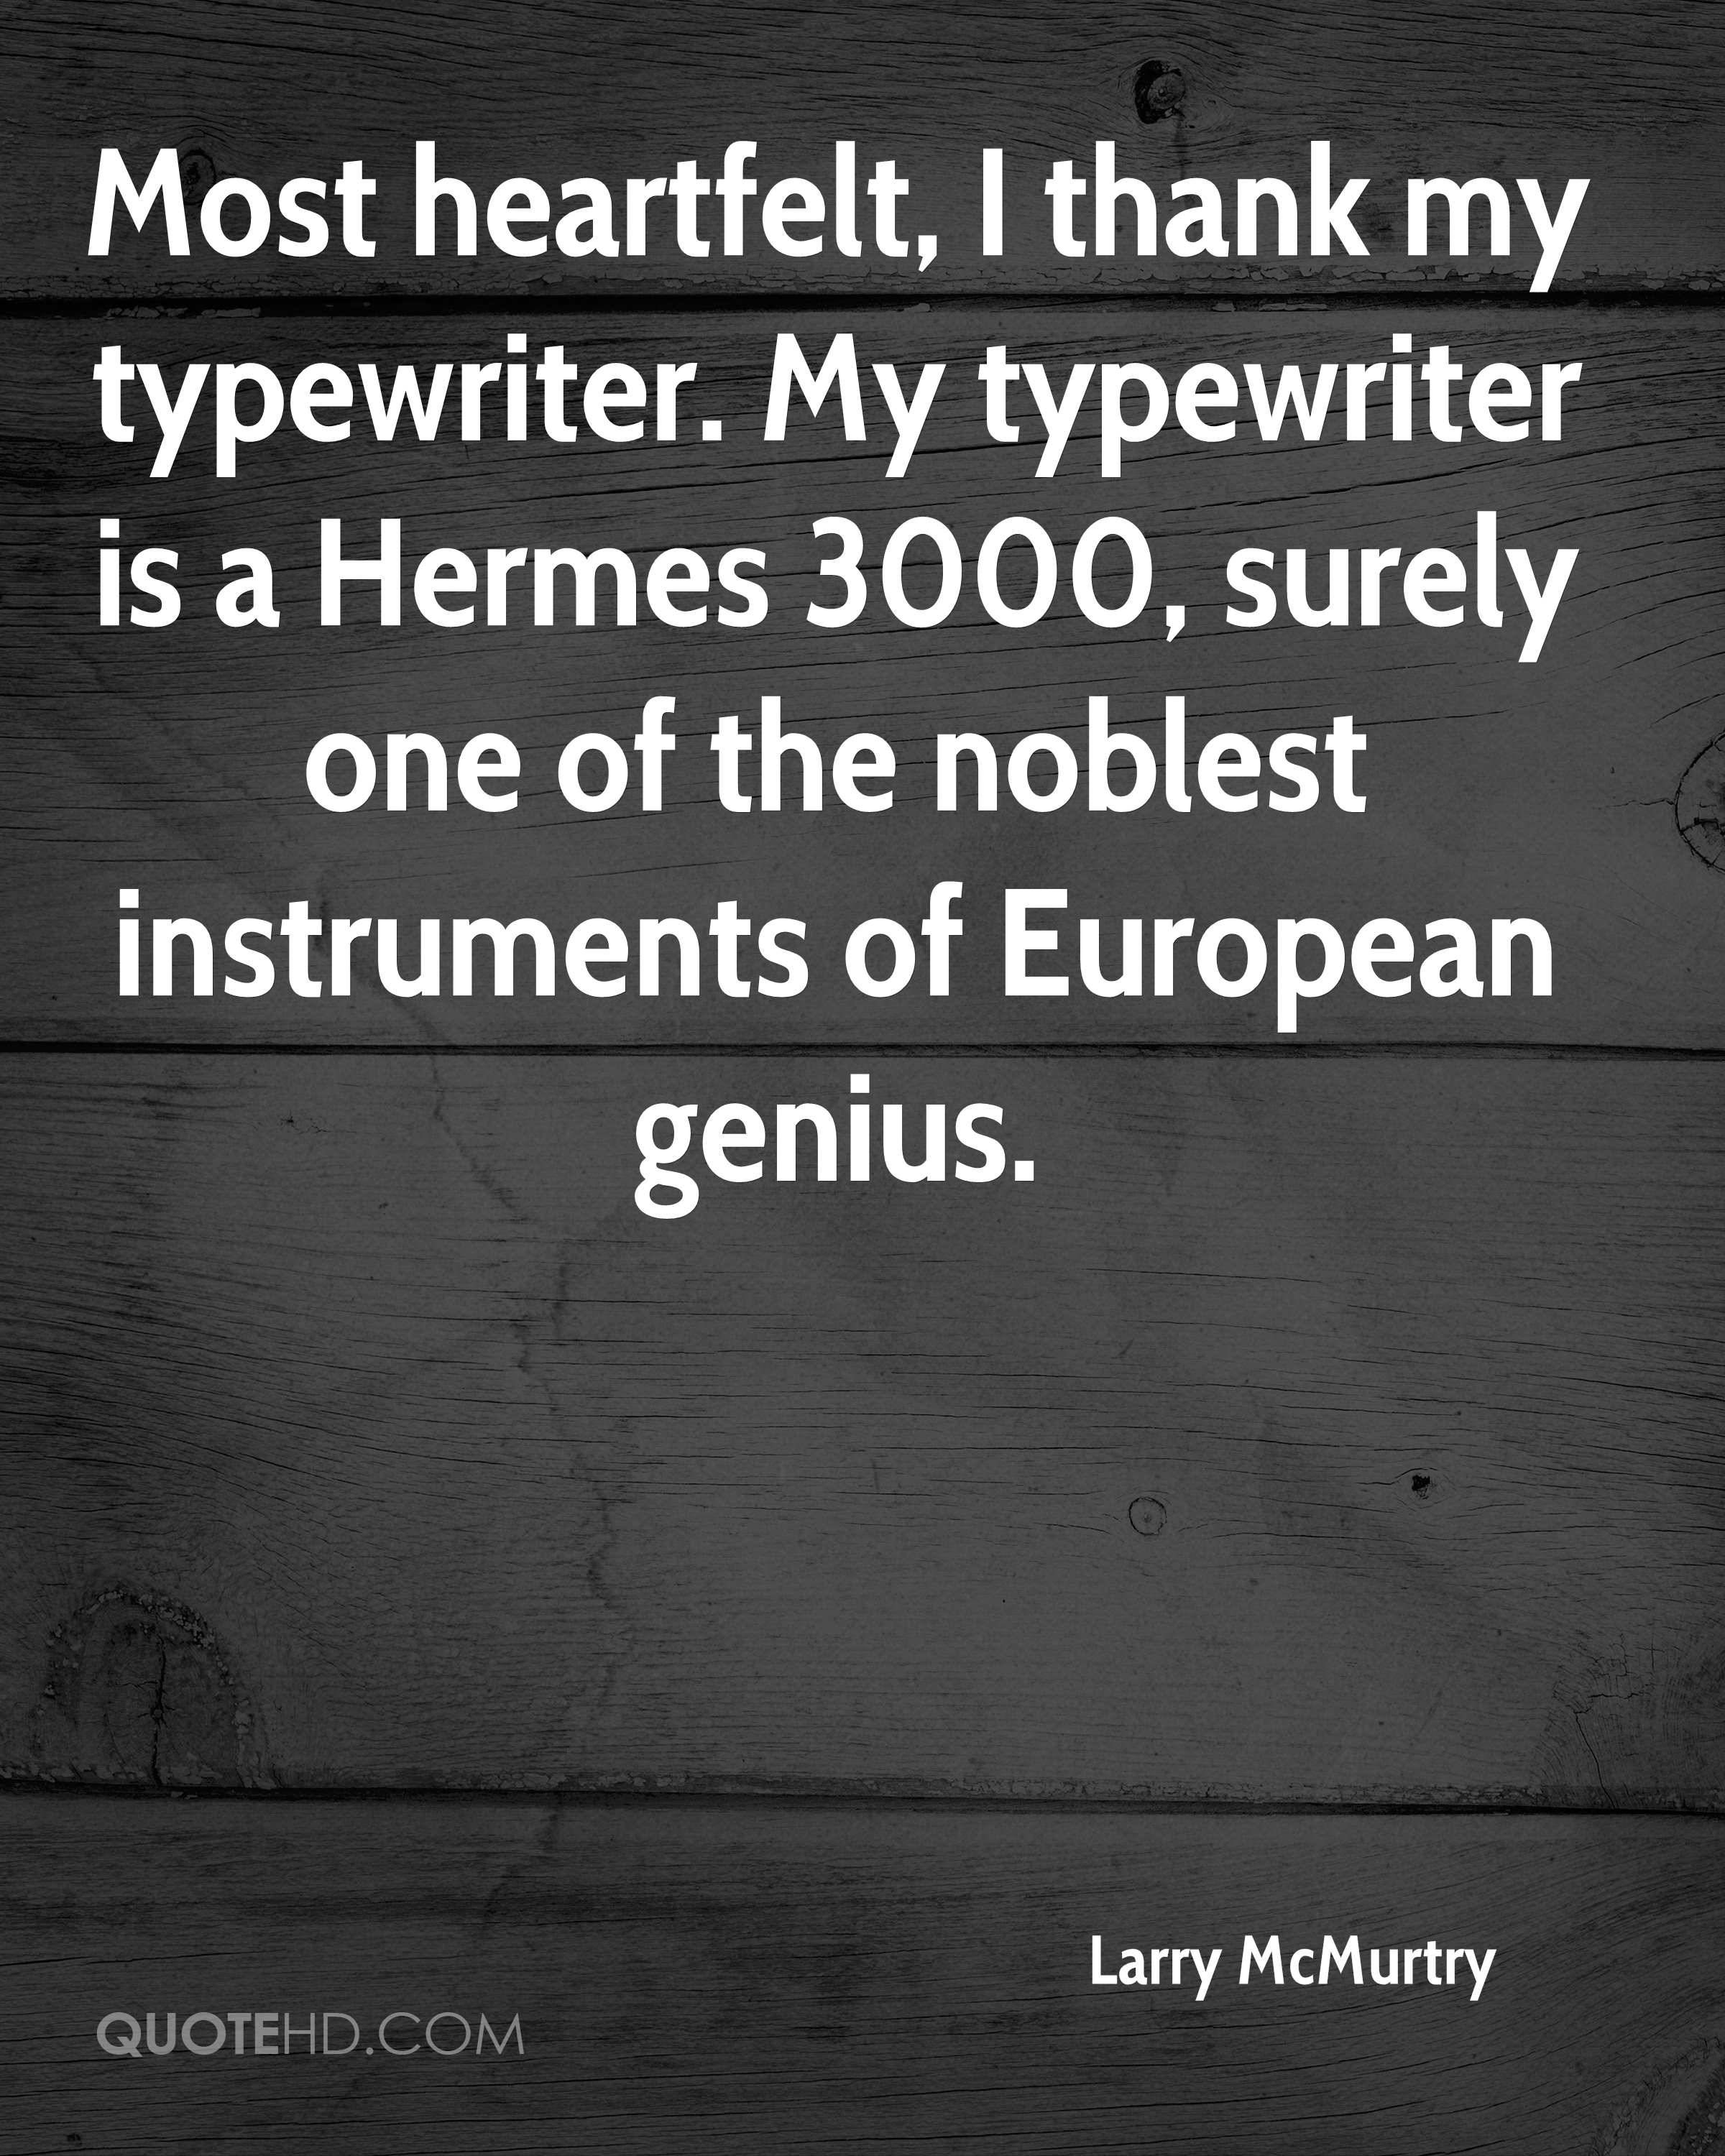 Most heartfelt, I thank my typewriter. My typewriter is a Hermes 3000, surely one of the noblest instruments of European genius.